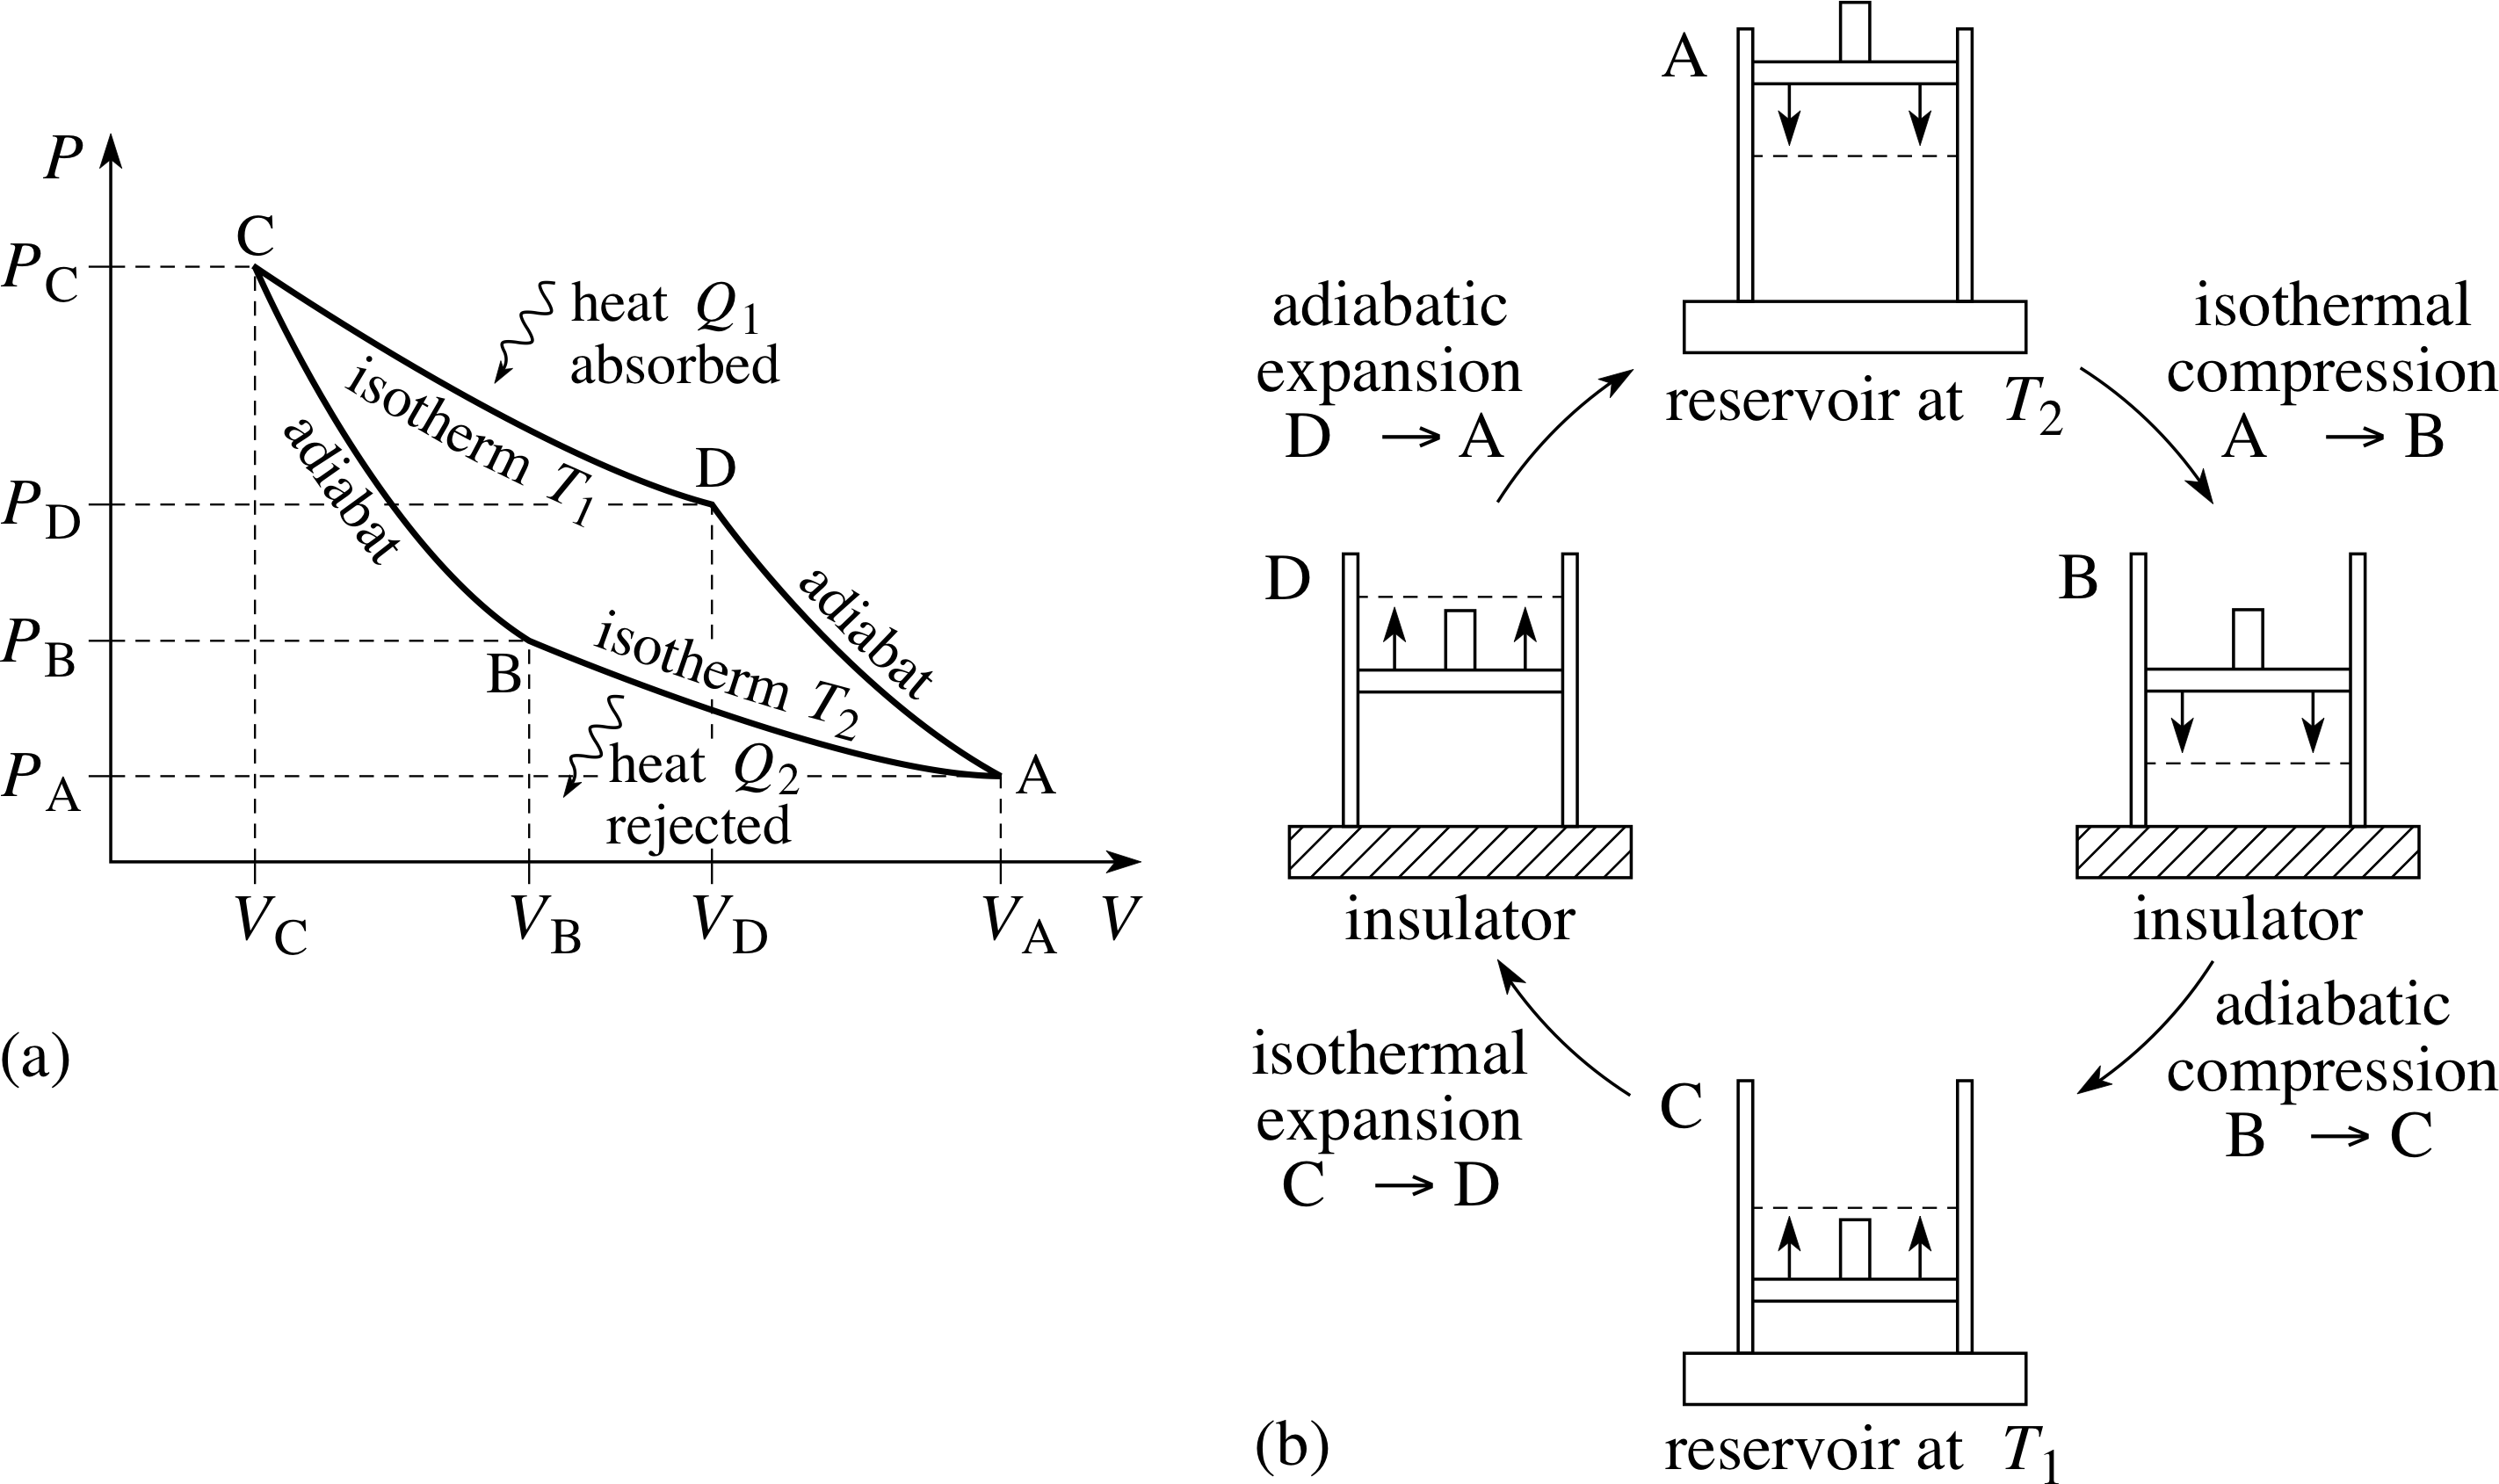 Pplato Flap Phys 74 Specific Heat Latent And Entropy Engine Loss Diagram